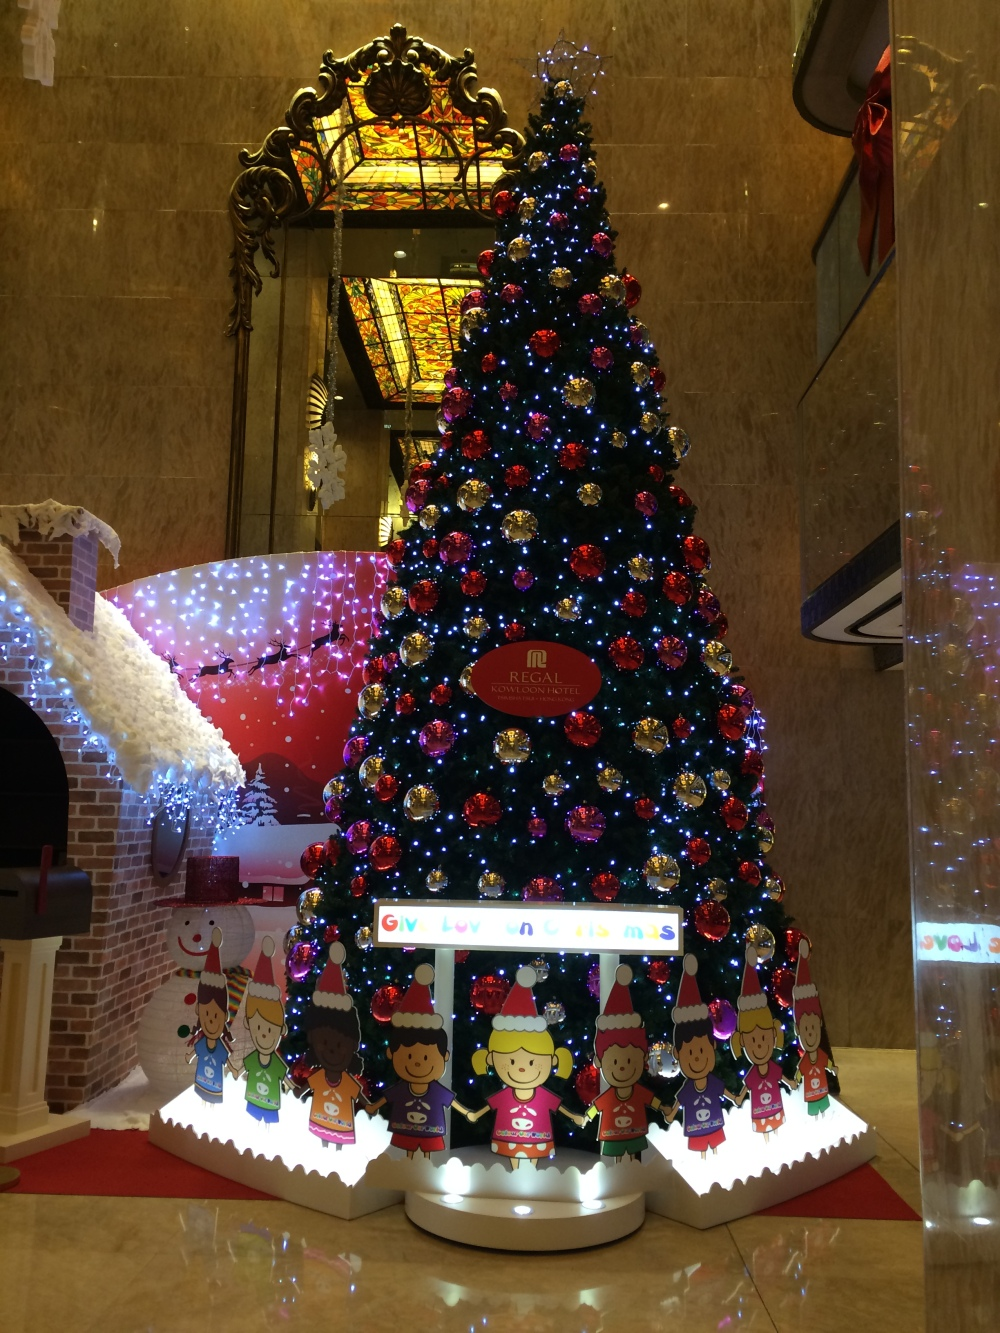 Our Hotel. Regal Kowloon. It had a really huge Christmas Tree.